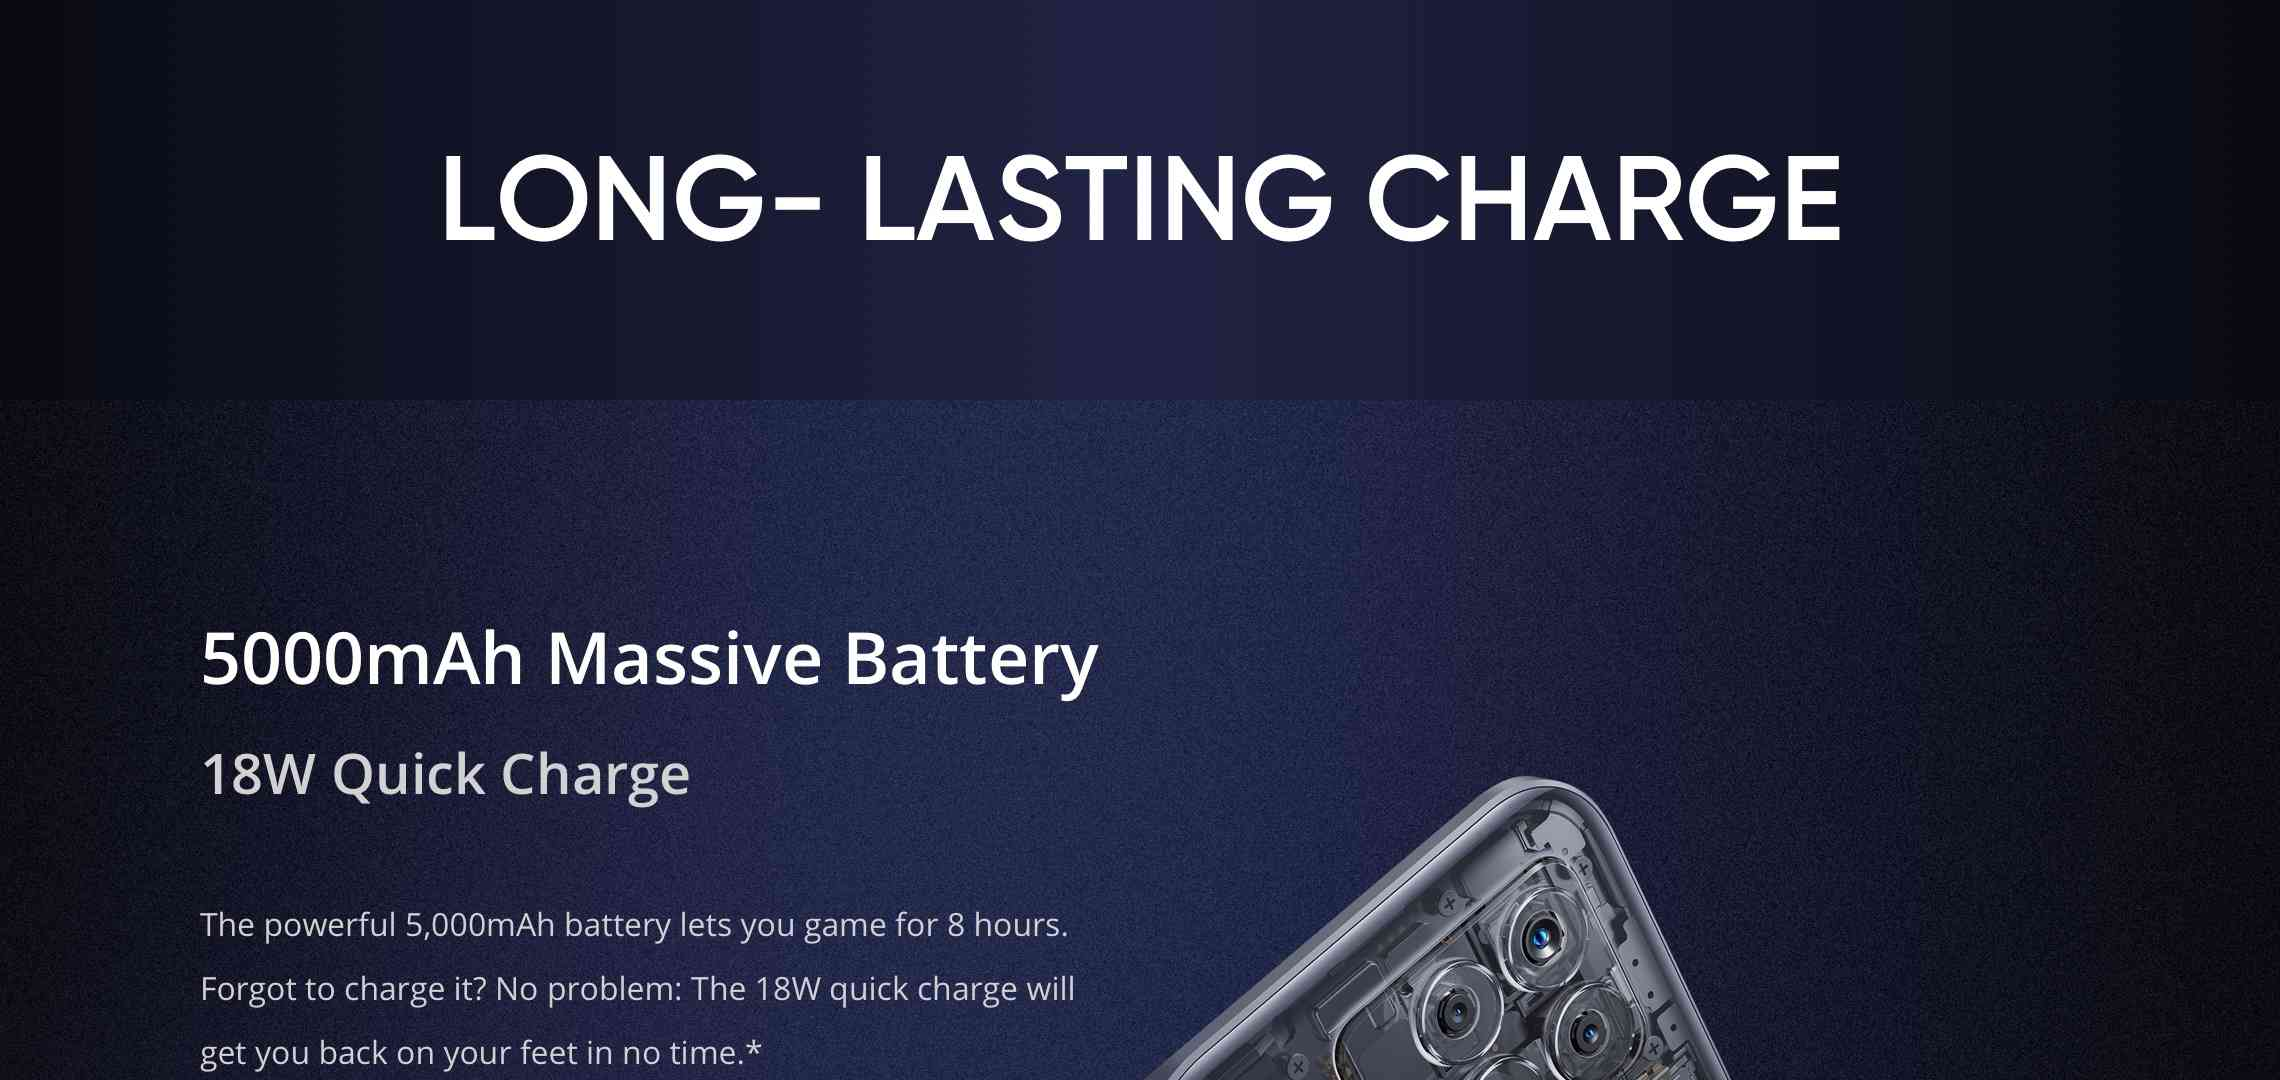 Realme long losting charge